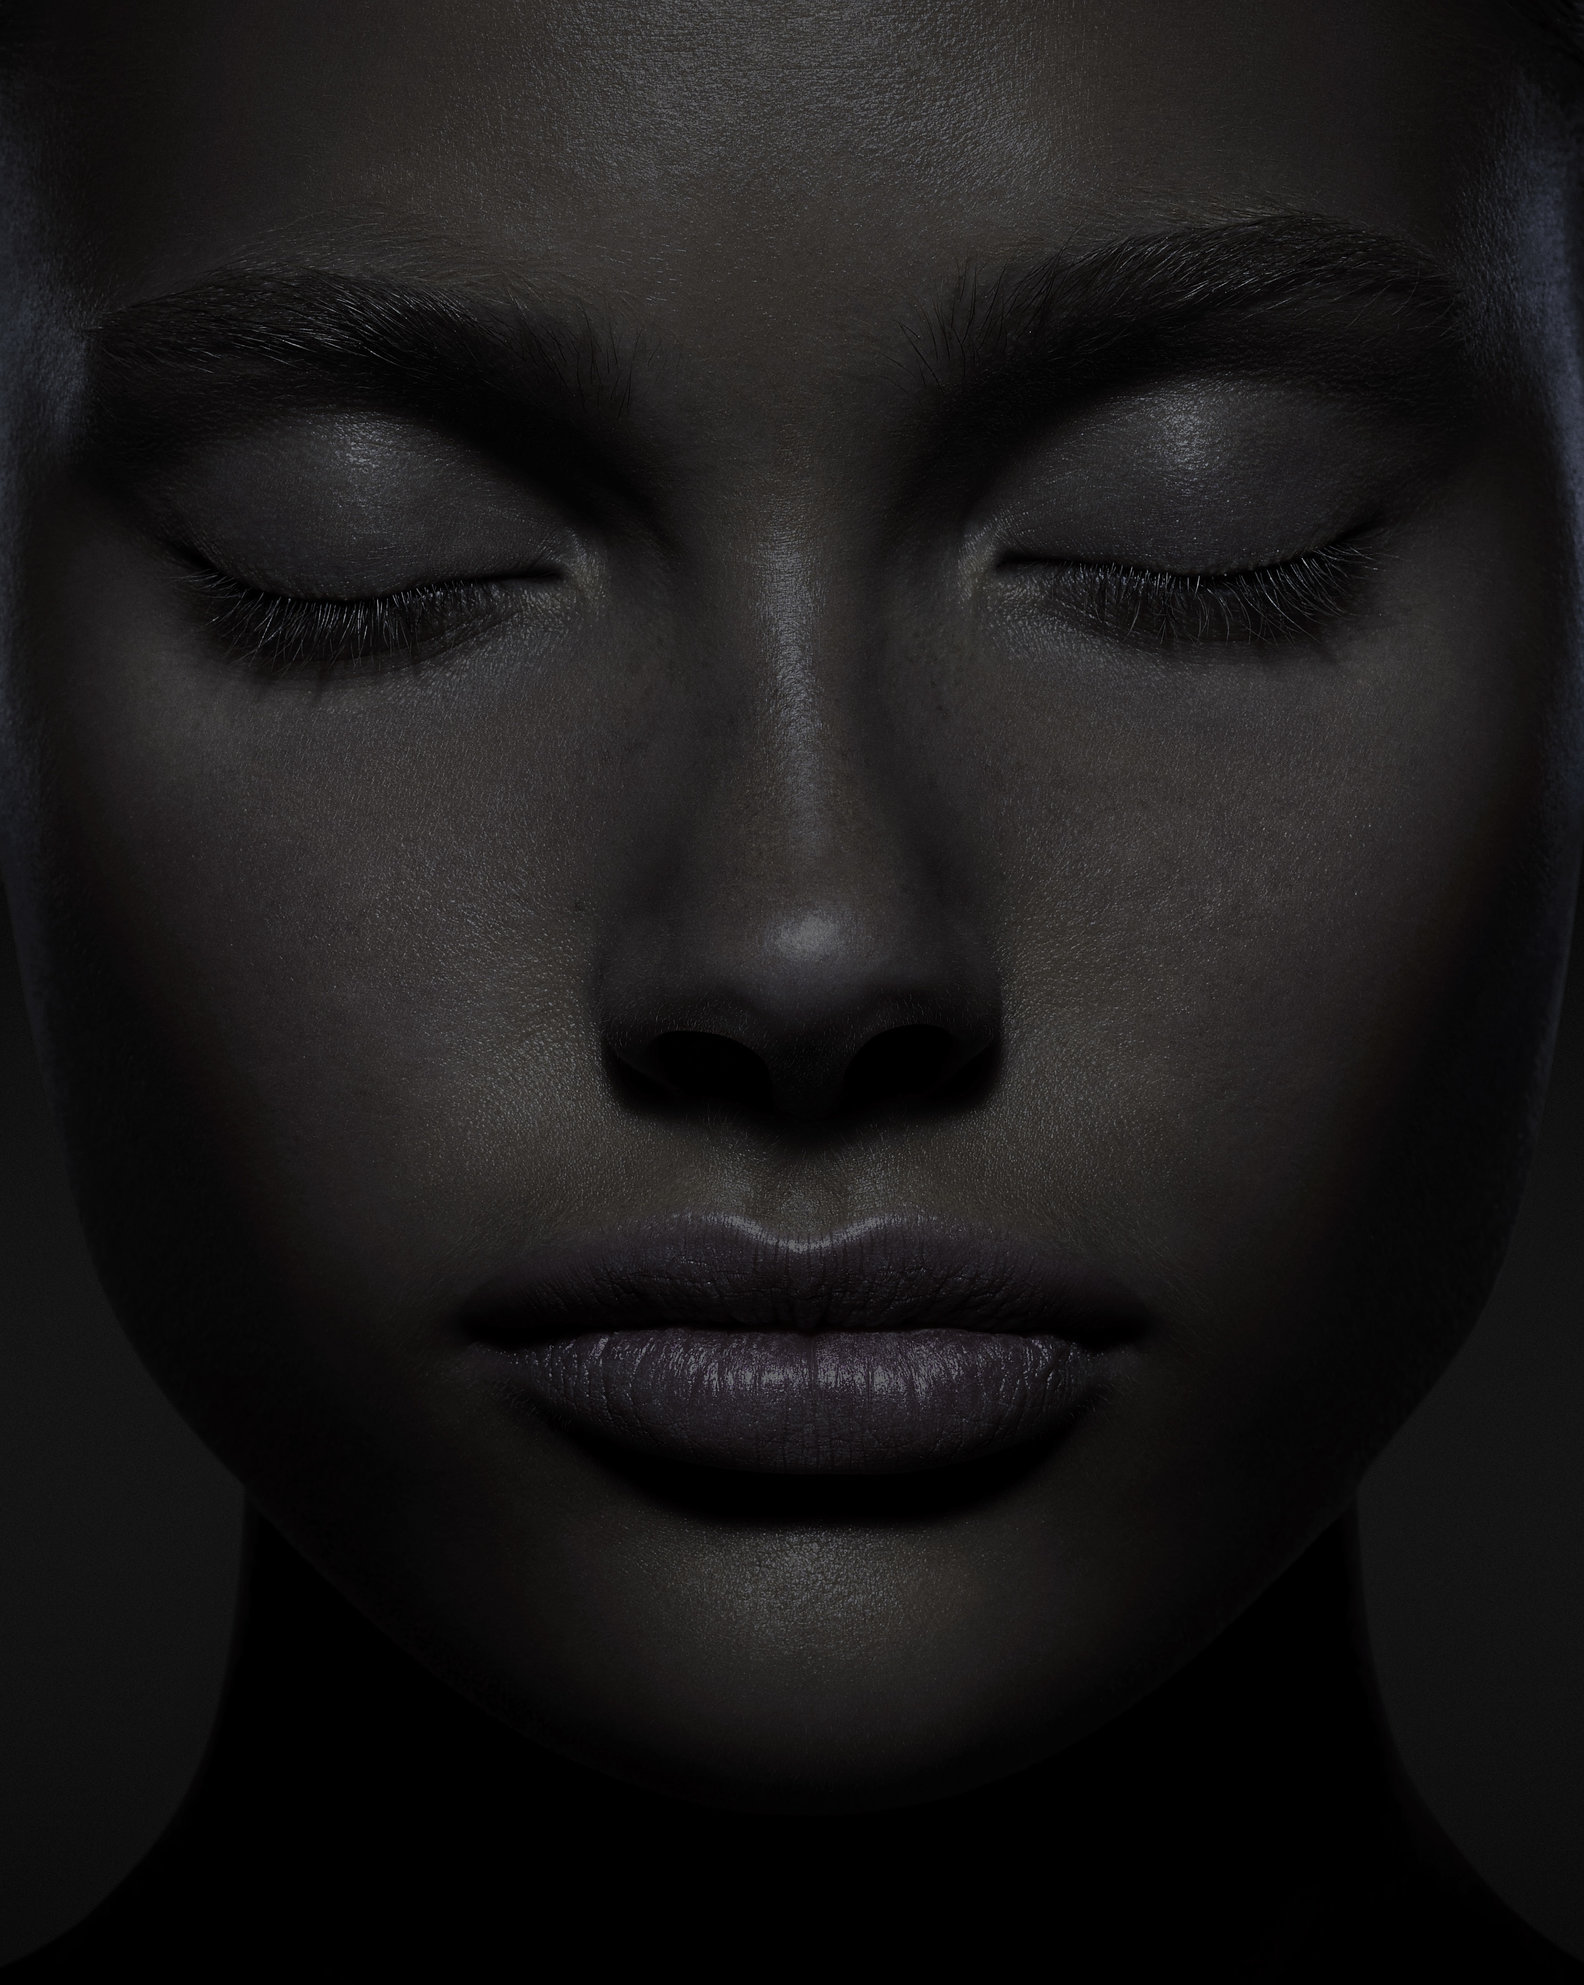 Dark female portrait with closed eyes